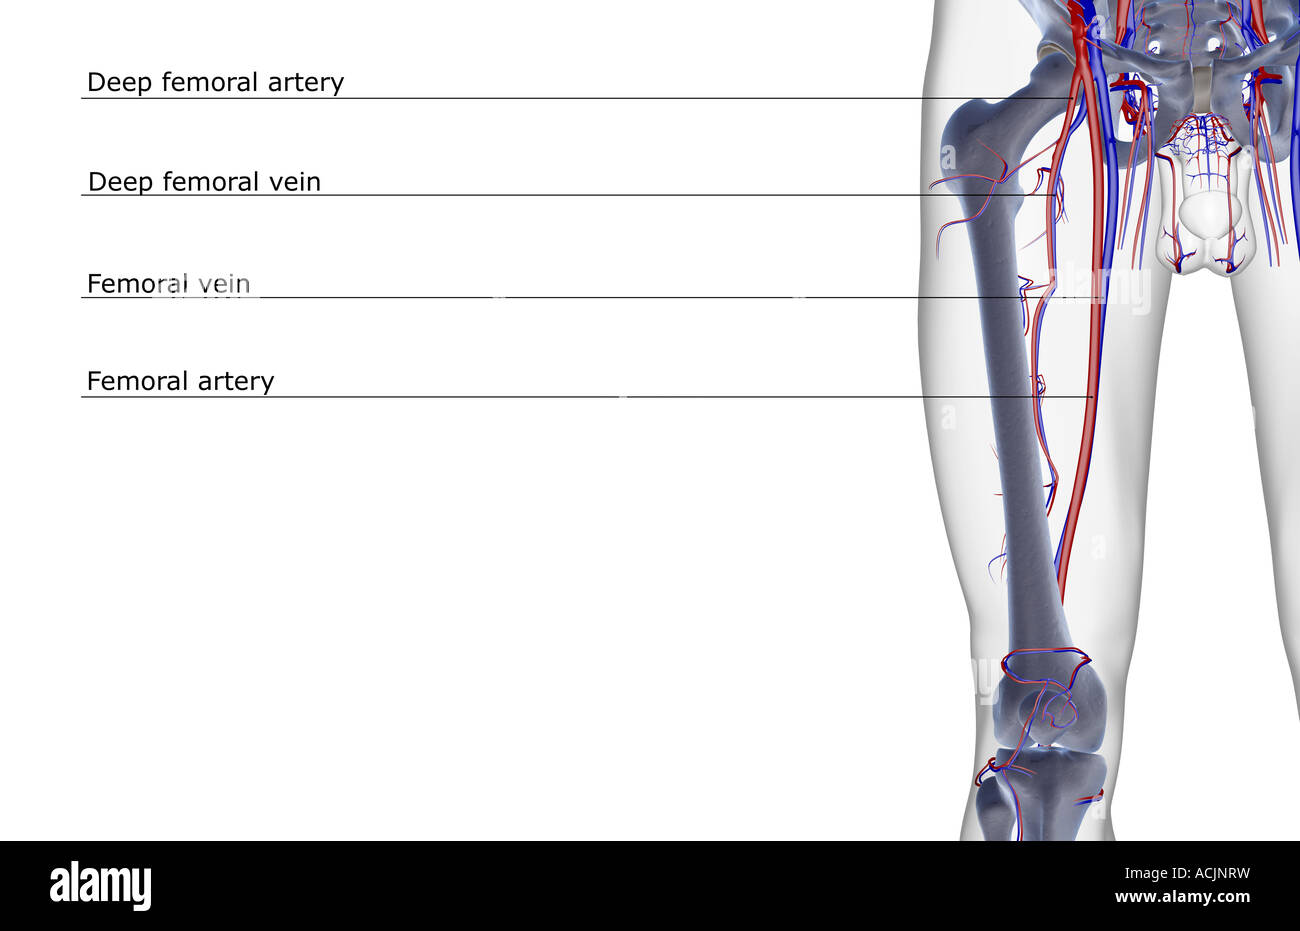 Thigh Artery Stock Photos & Thigh Artery Stock Images - Alamy